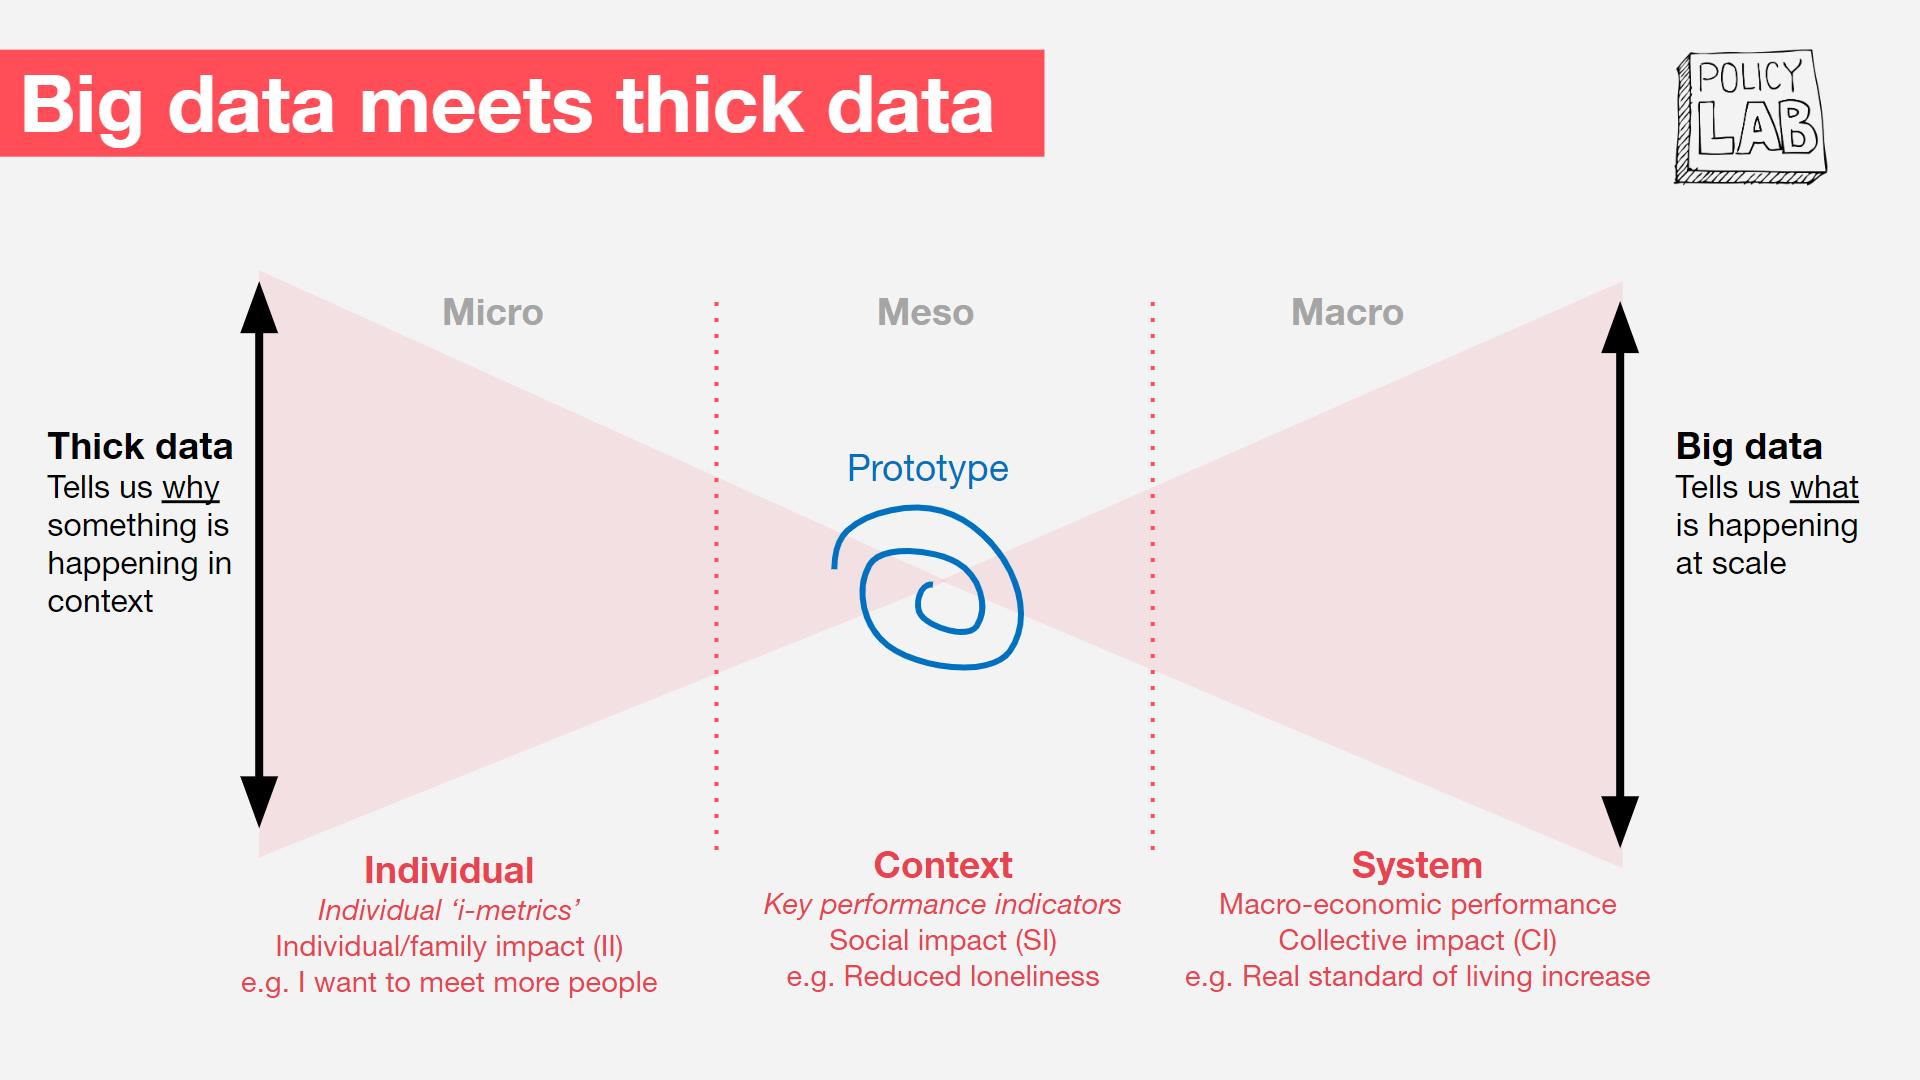 This is a diagram of Policy Lab's model for combining big data and thick data.